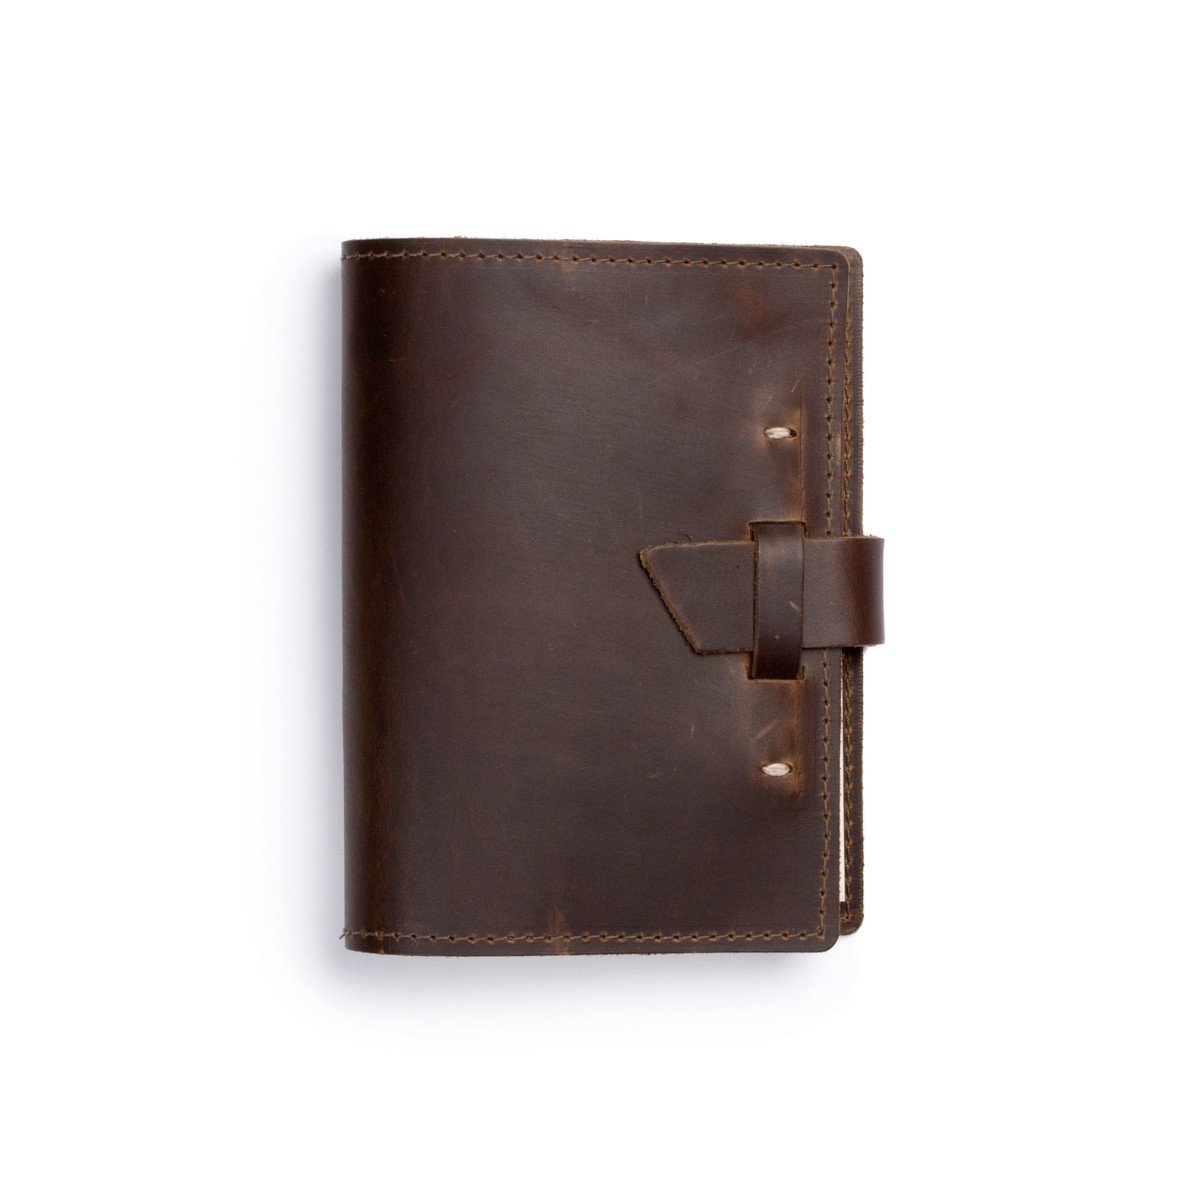 Rustico's Refillable Leather Journal Wasatch Notebook! Classy Softcover Writing Notebook In Dark Brown, Writers Notebook, Markings Journal, 192 pages, Made in USA (Dark Brown)